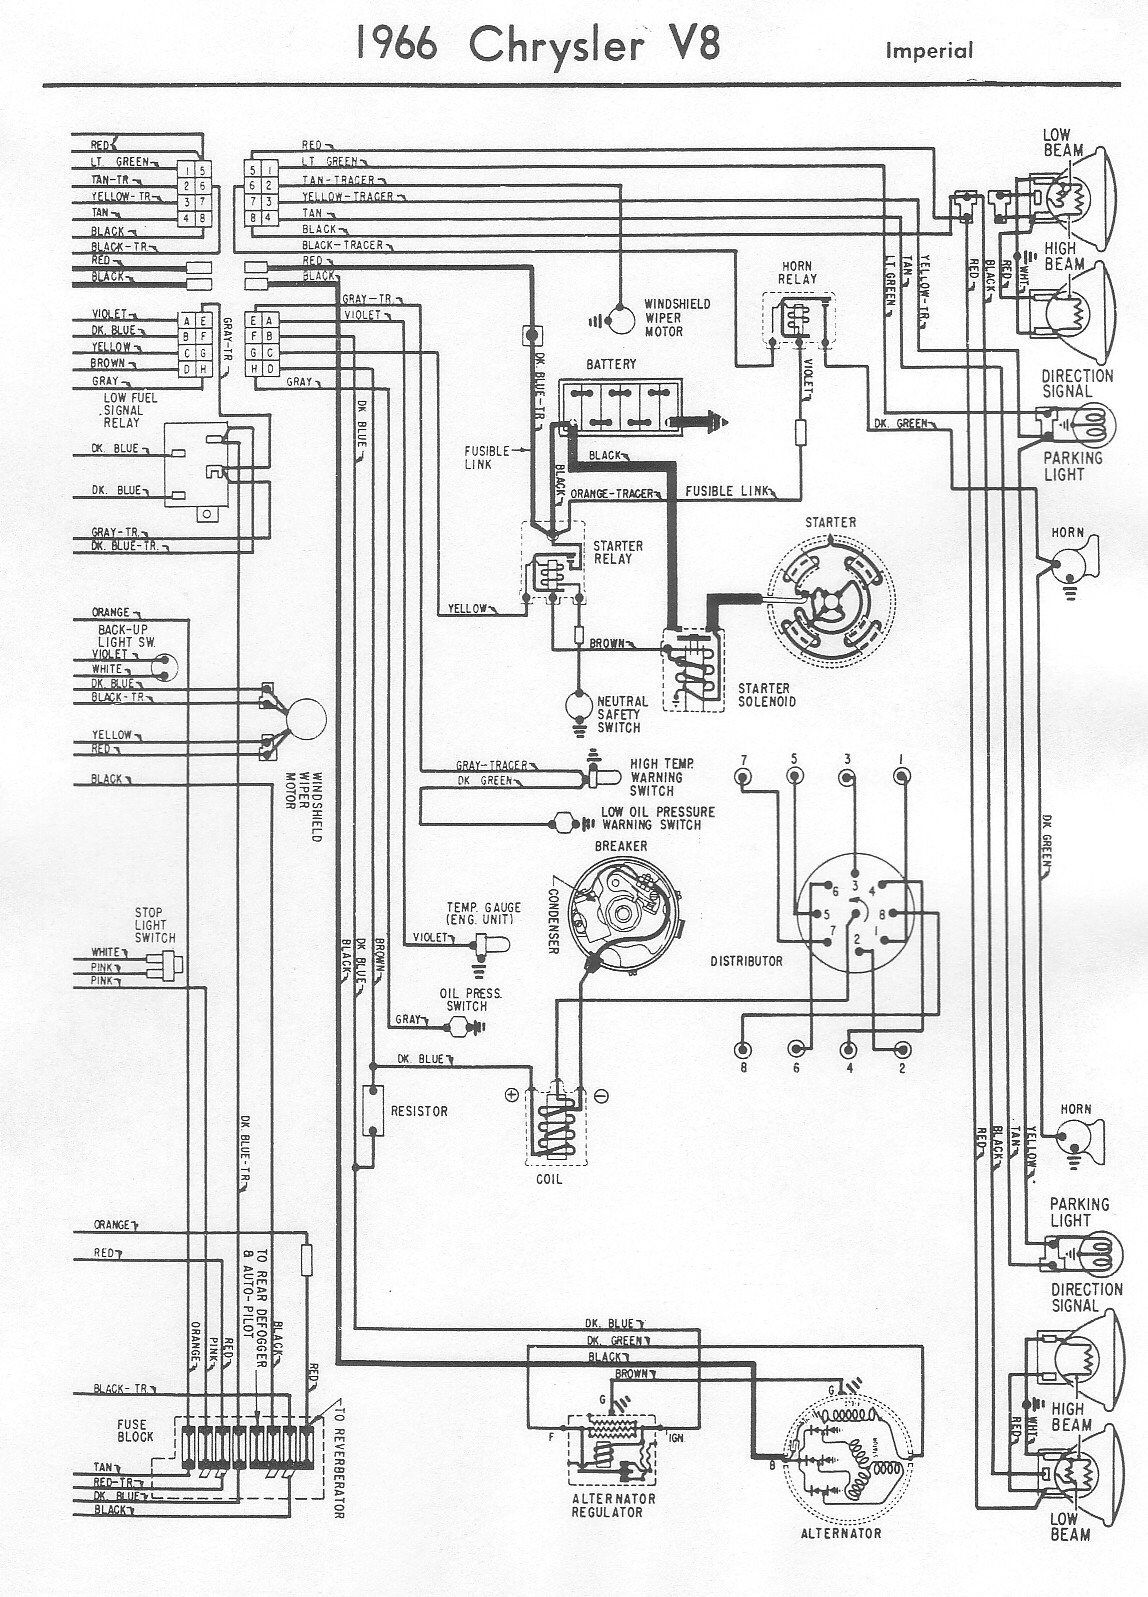 1970 mustang instrument diagram wiring schematic 1966 mustang instrument panel wiring schematic